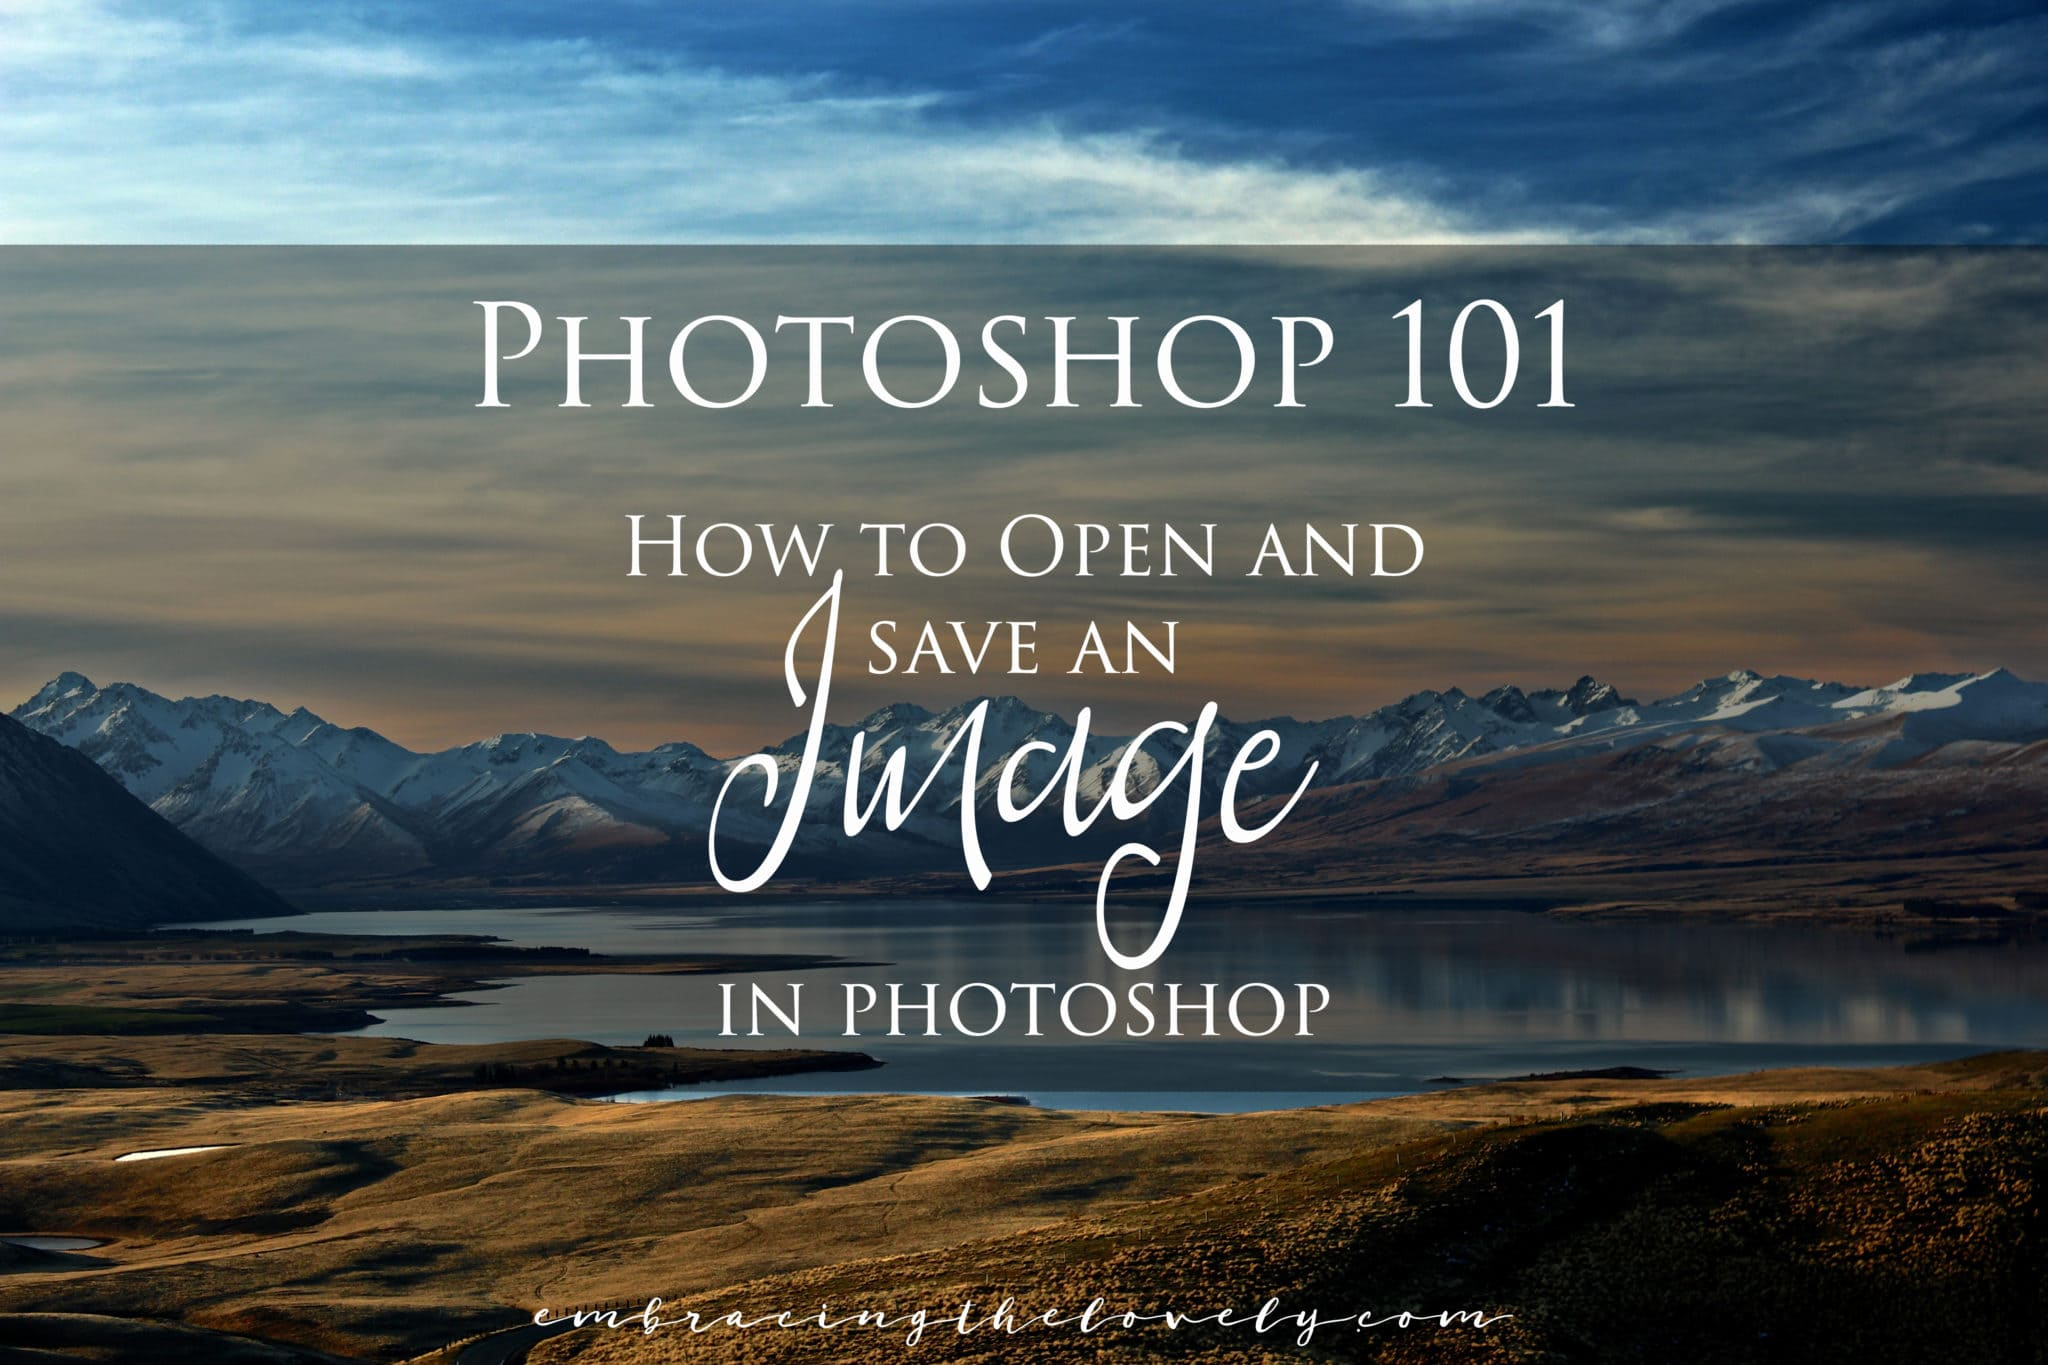 Photoshop 101: How to Open and Save an Image in Photoshop